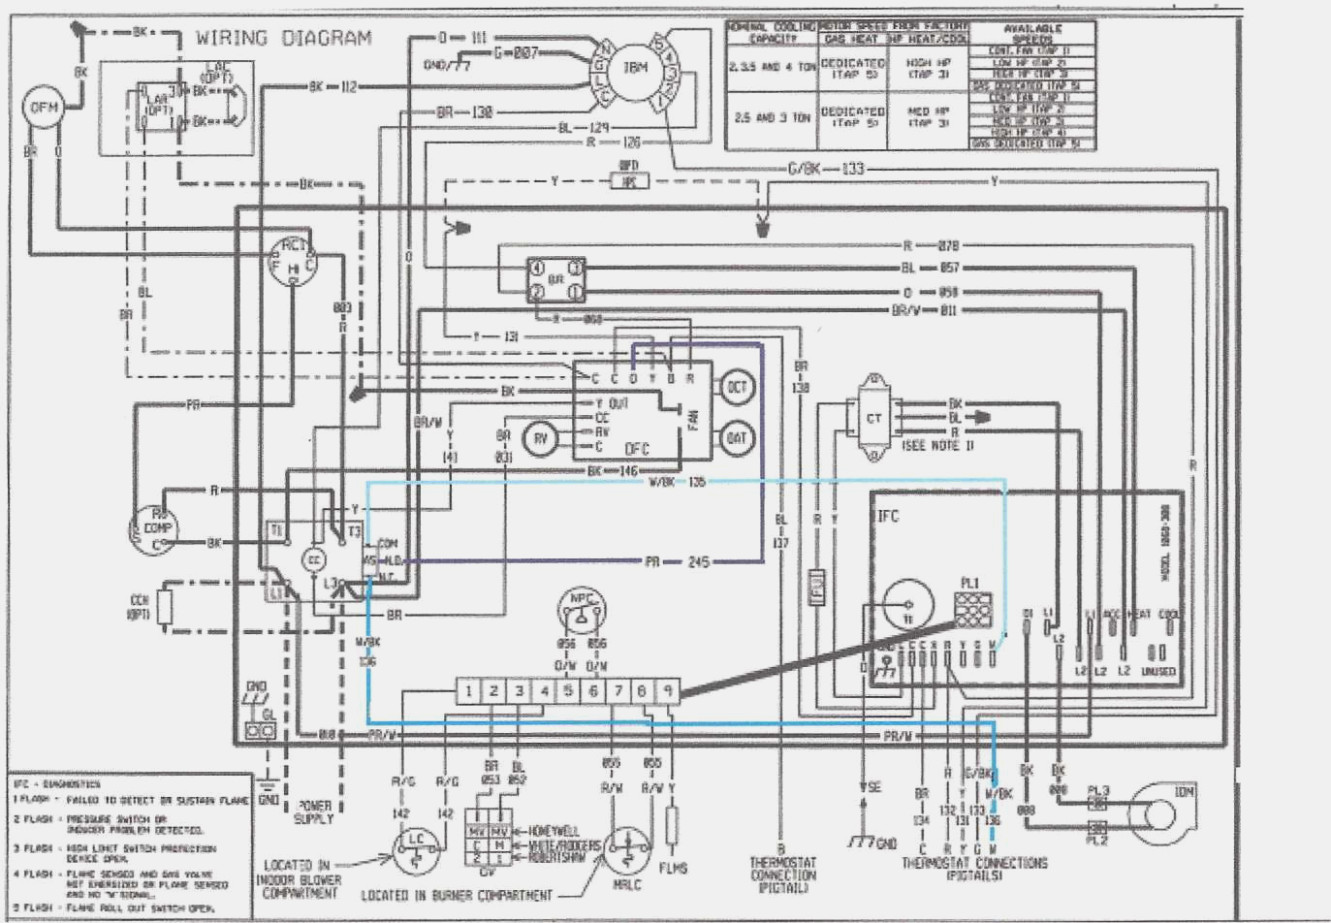 hight resolution of 1331x923 ruud schematic diagram schematic drawing